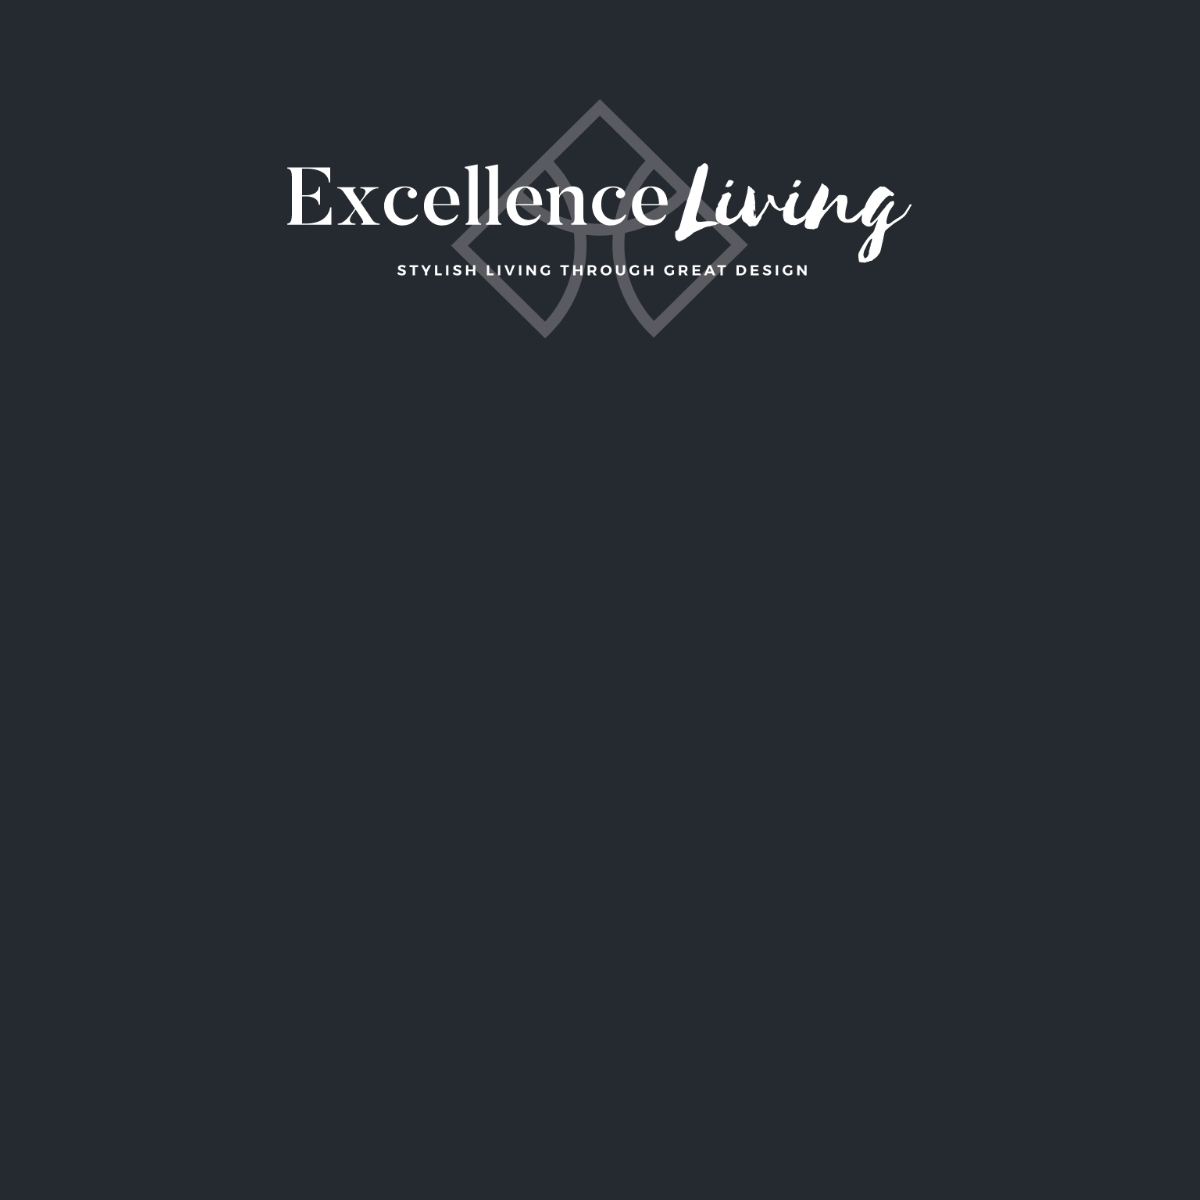 Almost black background with the Excellence Living logo in the top middle